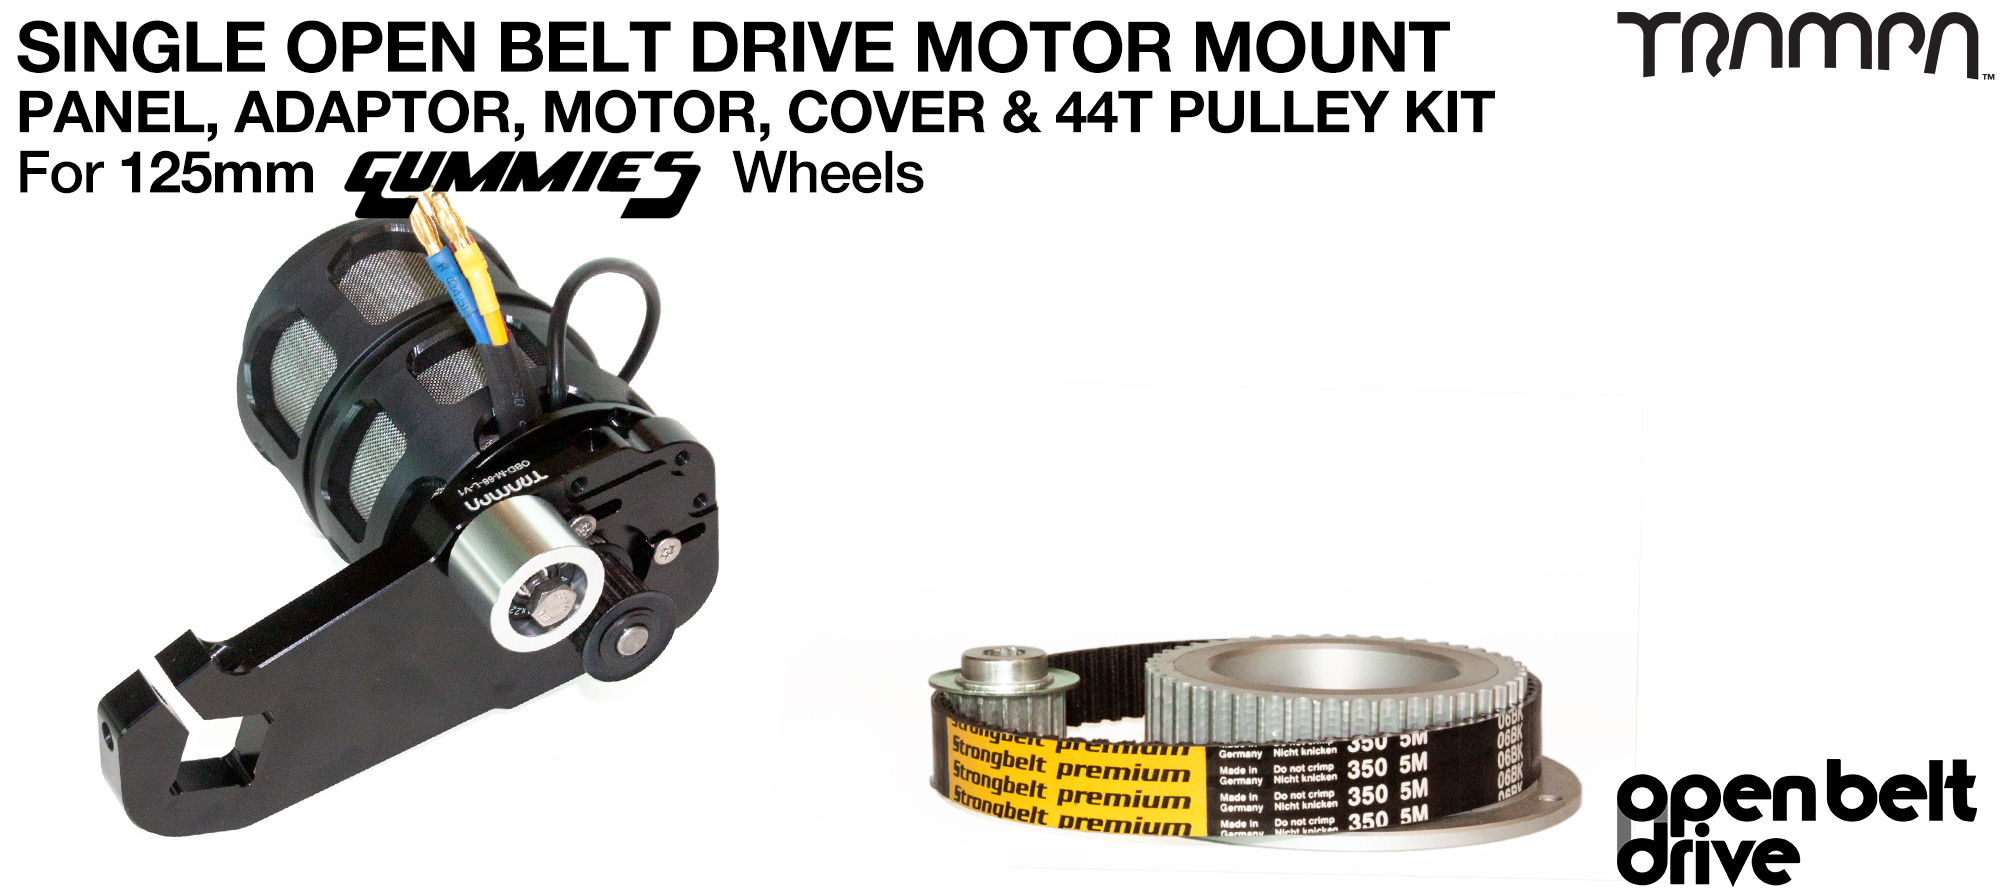 66T OBD Motor Mount with 44T Pulley kit, Motor & Filters  - SINGLE